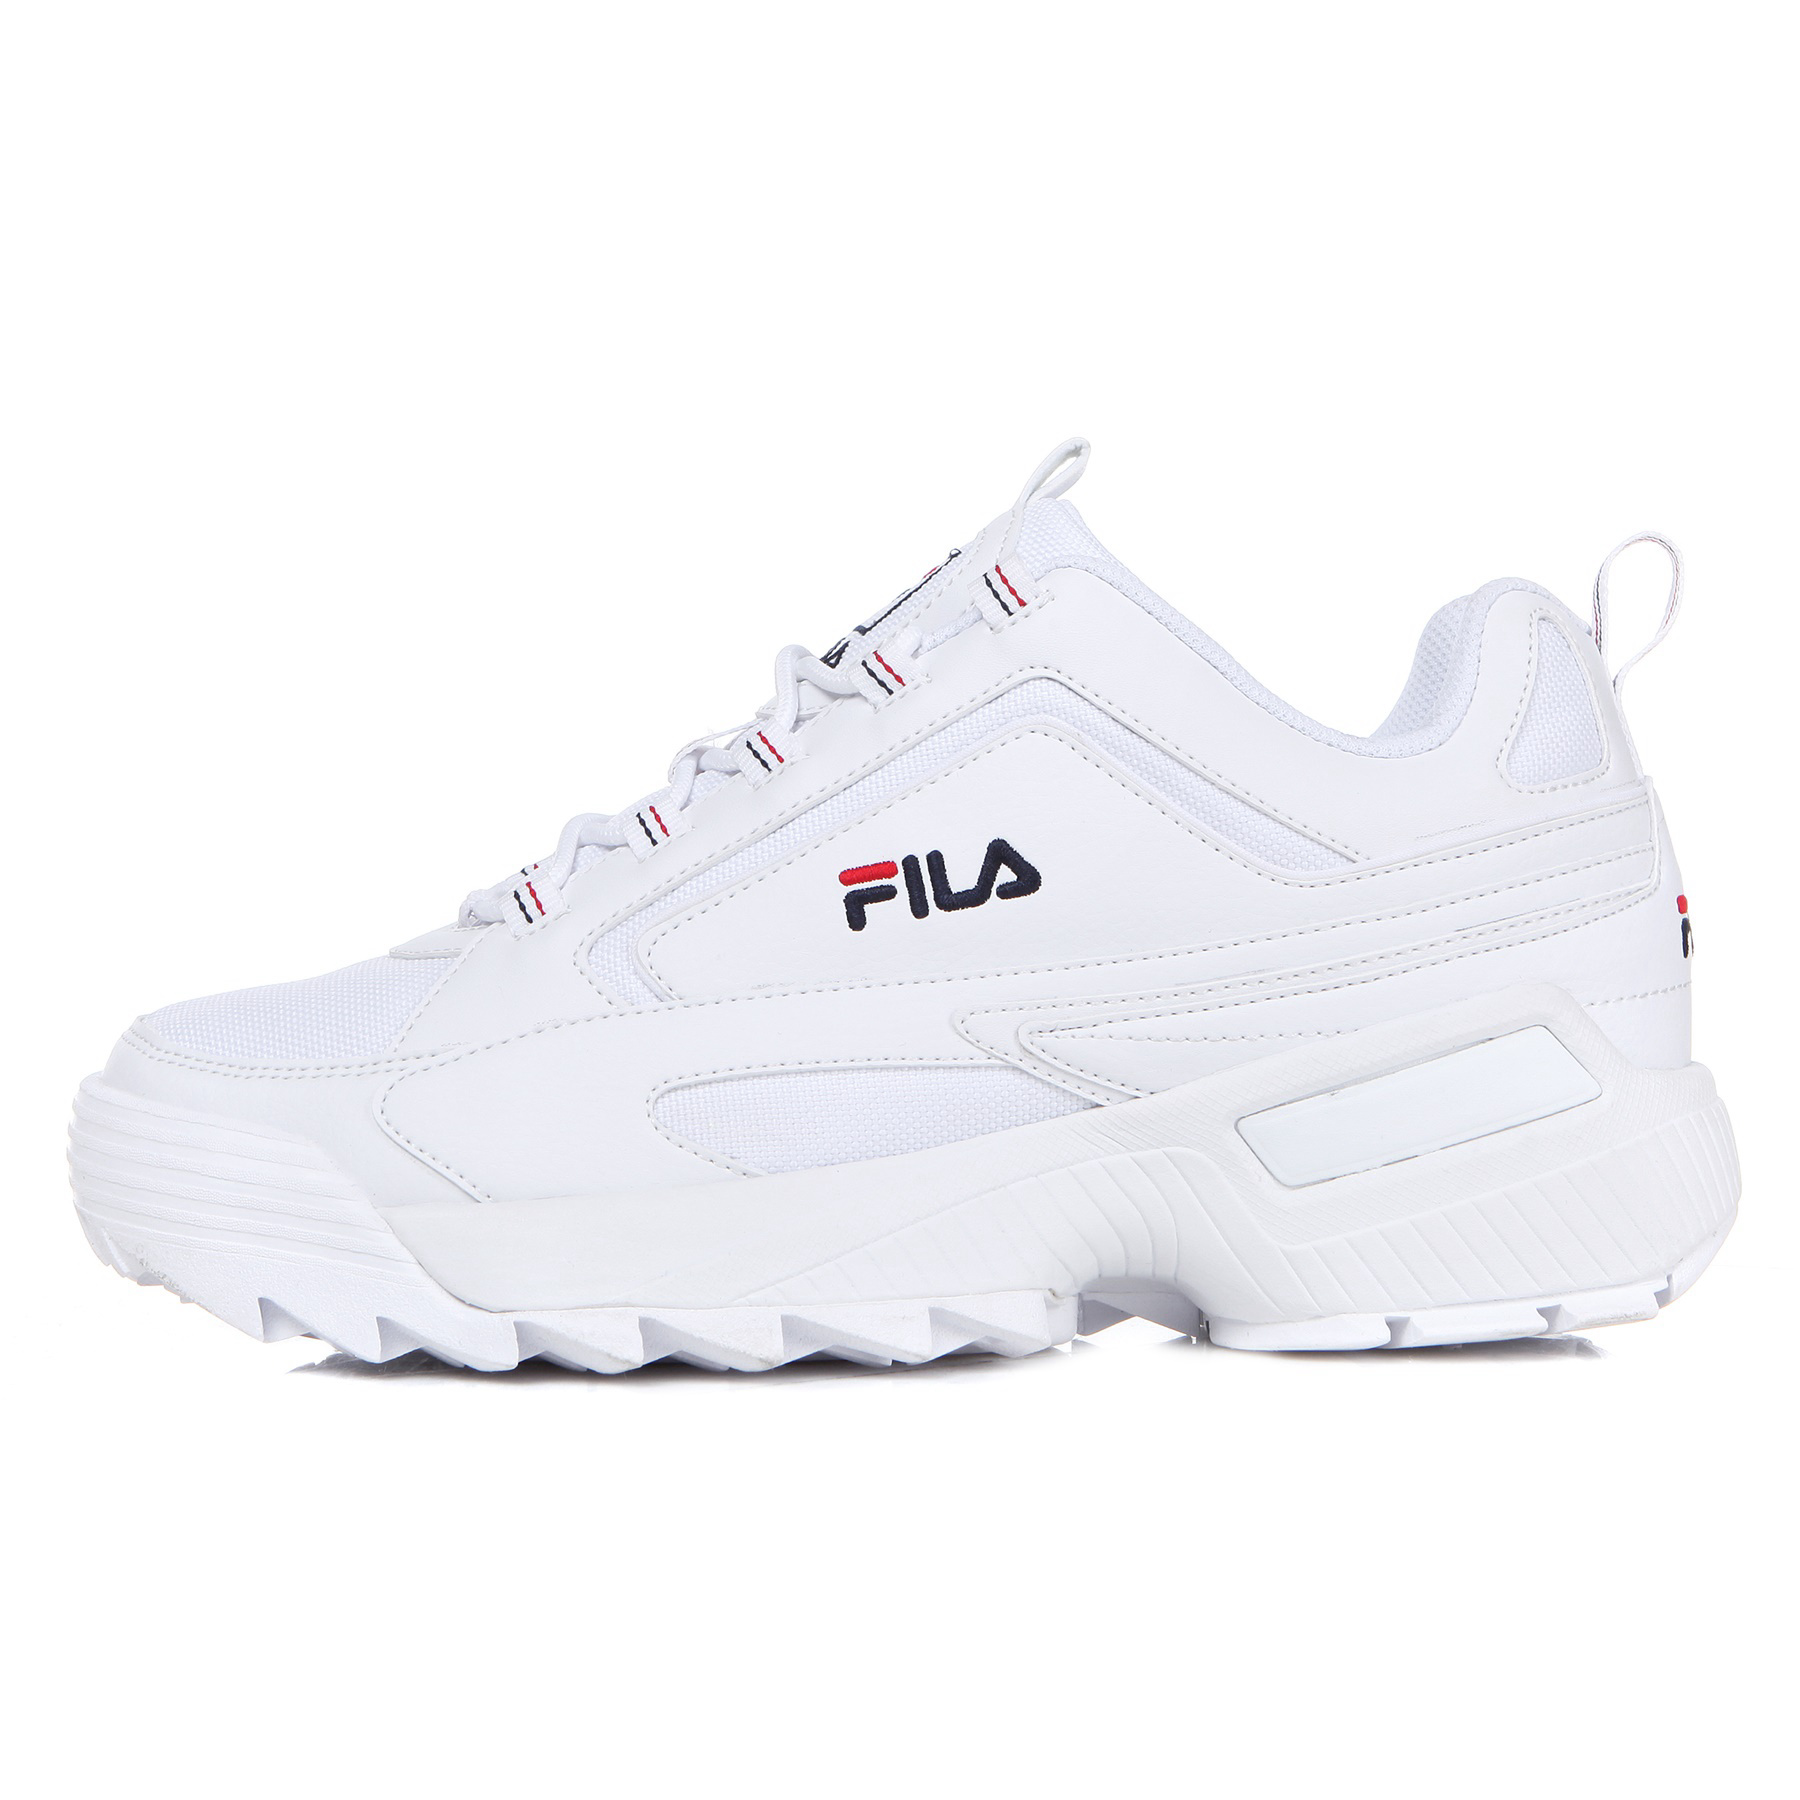 FILA UGLY SOOES 썸네일 이미지 1